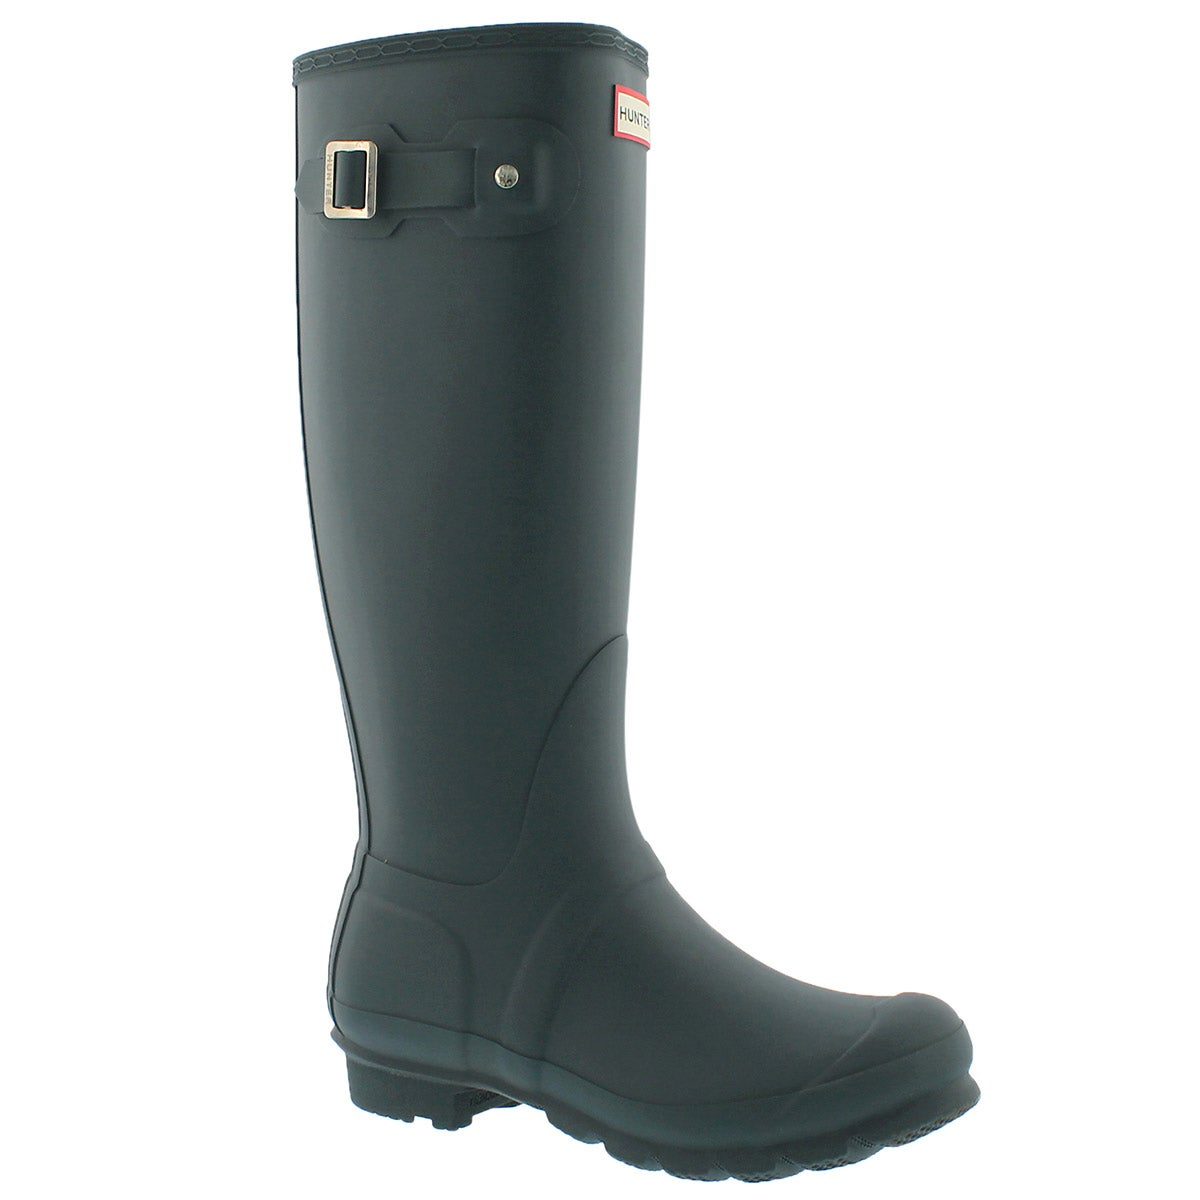 Lds Original Tall Classic ocean rainboot